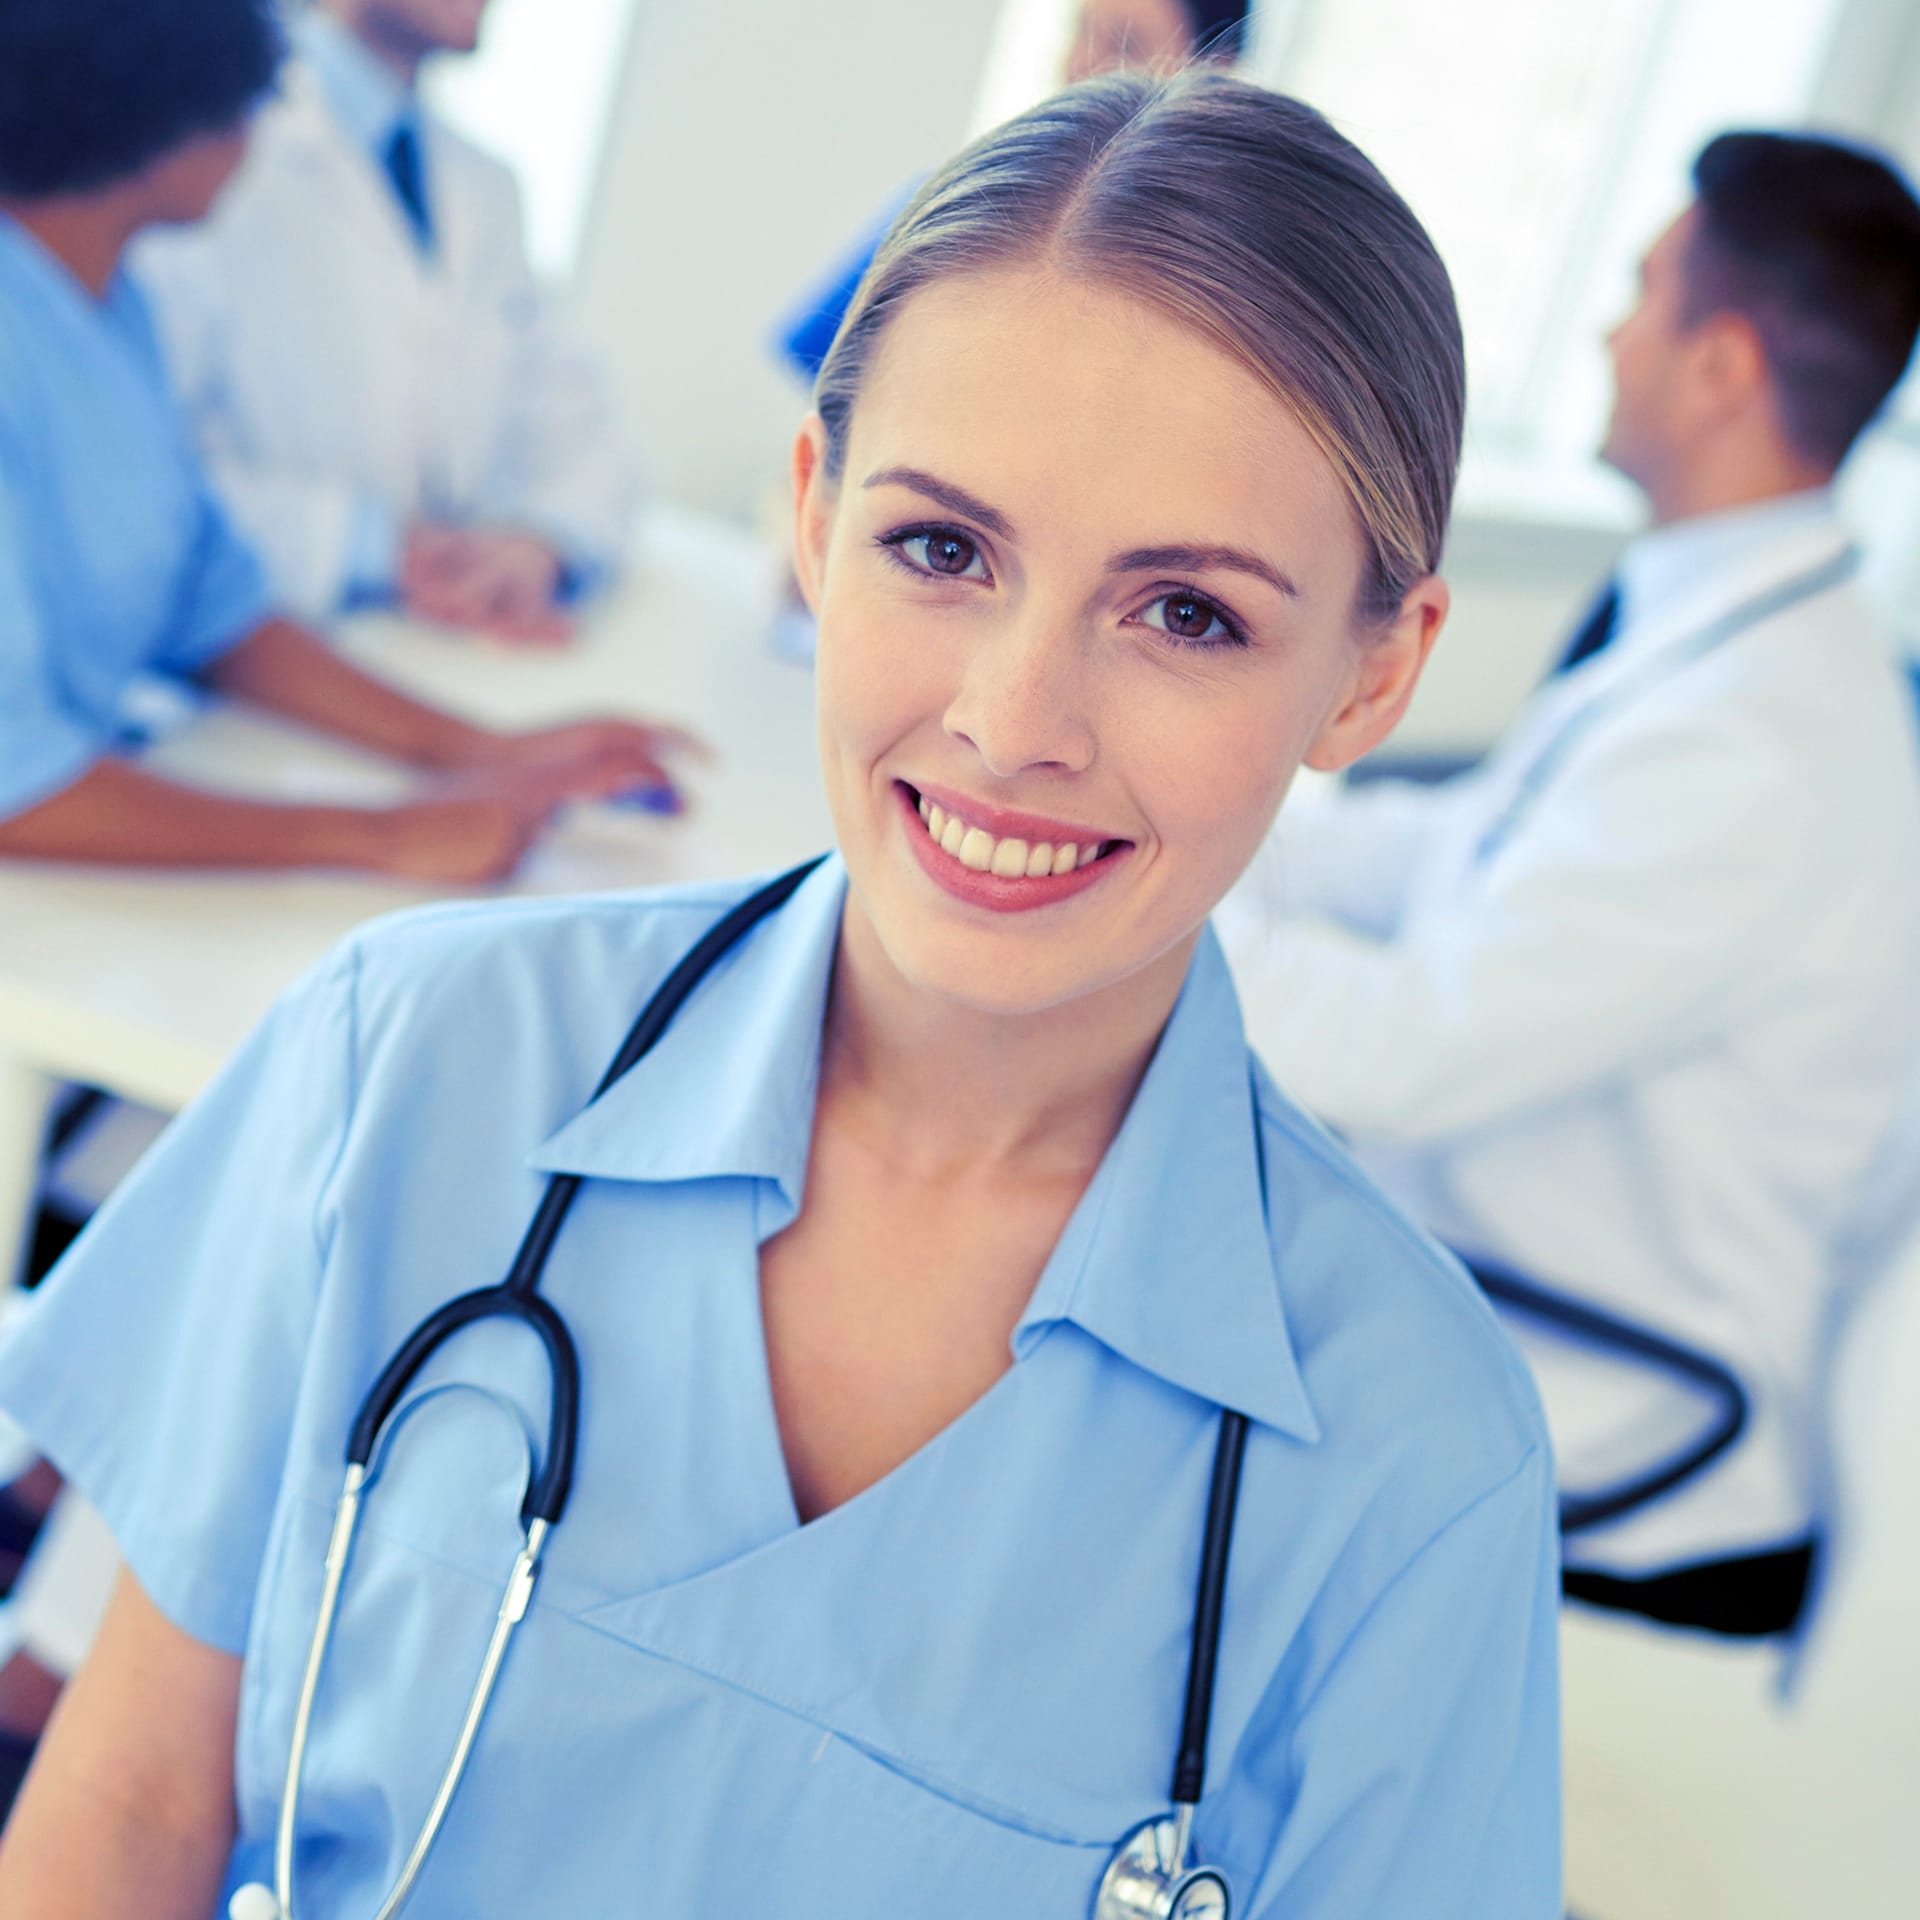 Healthcare Administration Professional